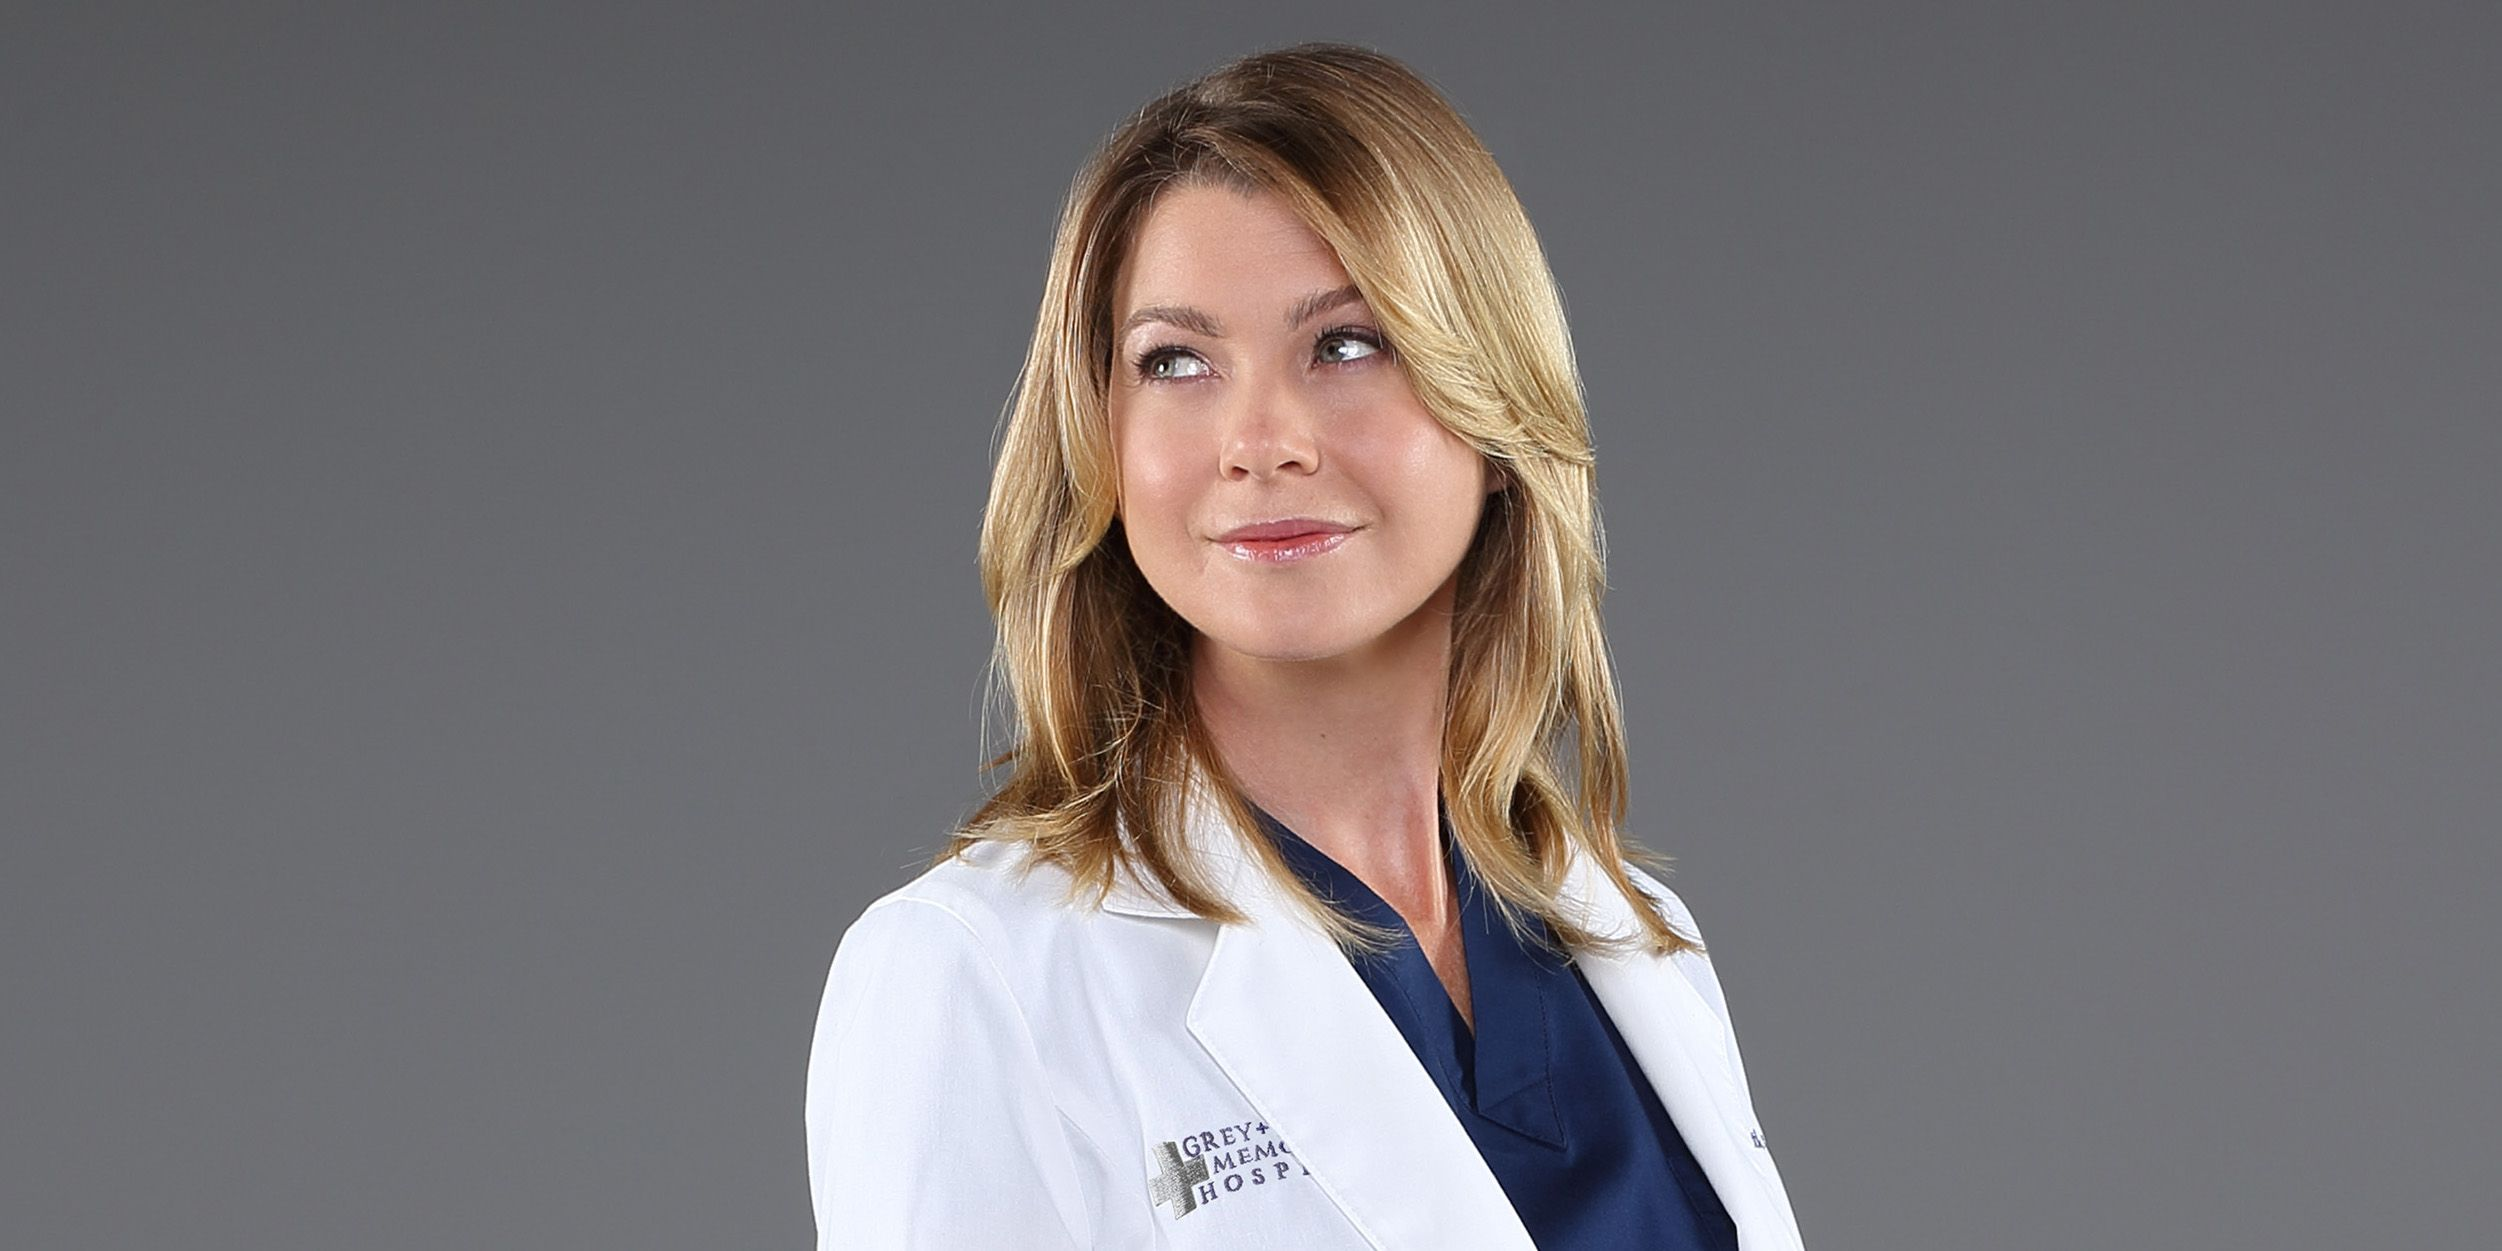 Greys Anatomy Is Officially Renewed For Season 15